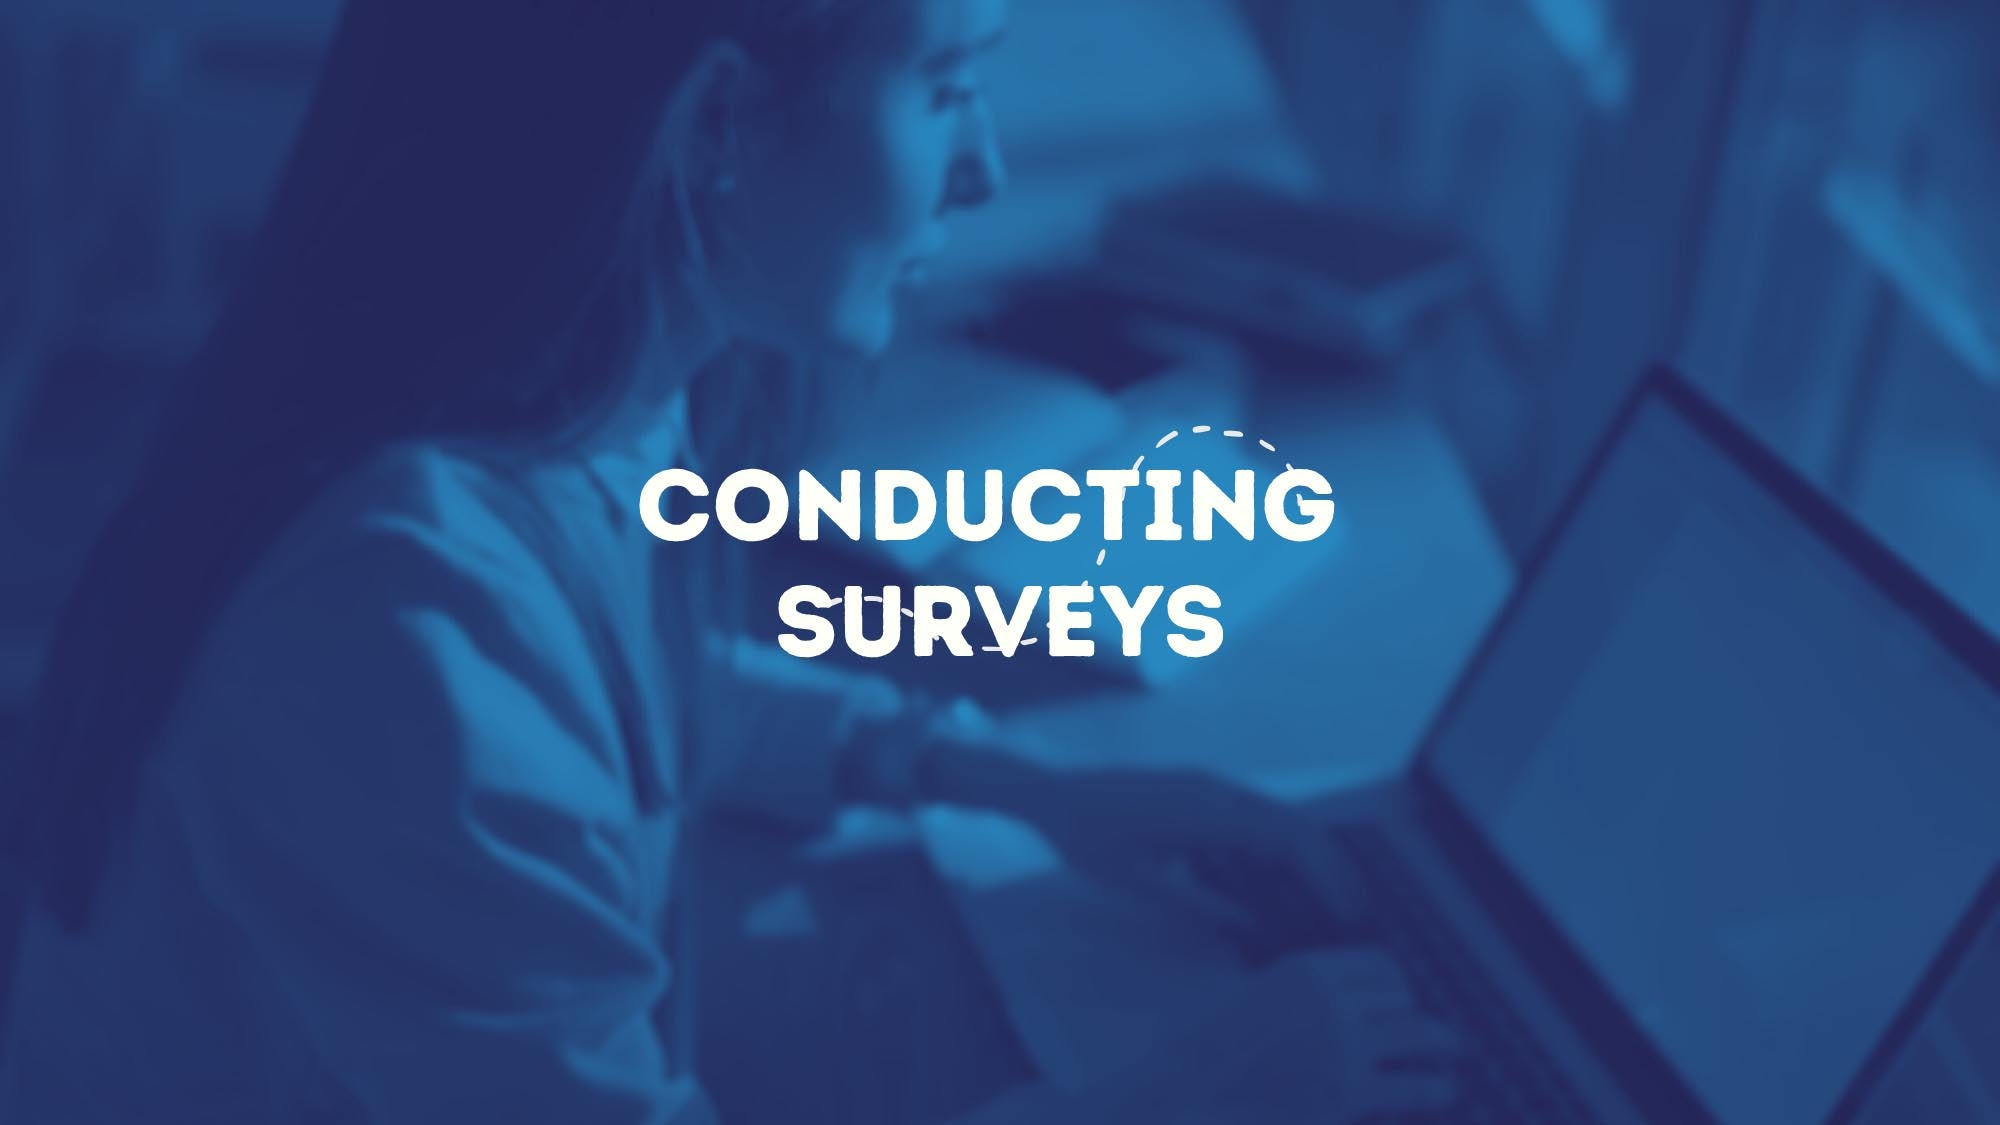 Conducting Surveys - Dropship USA